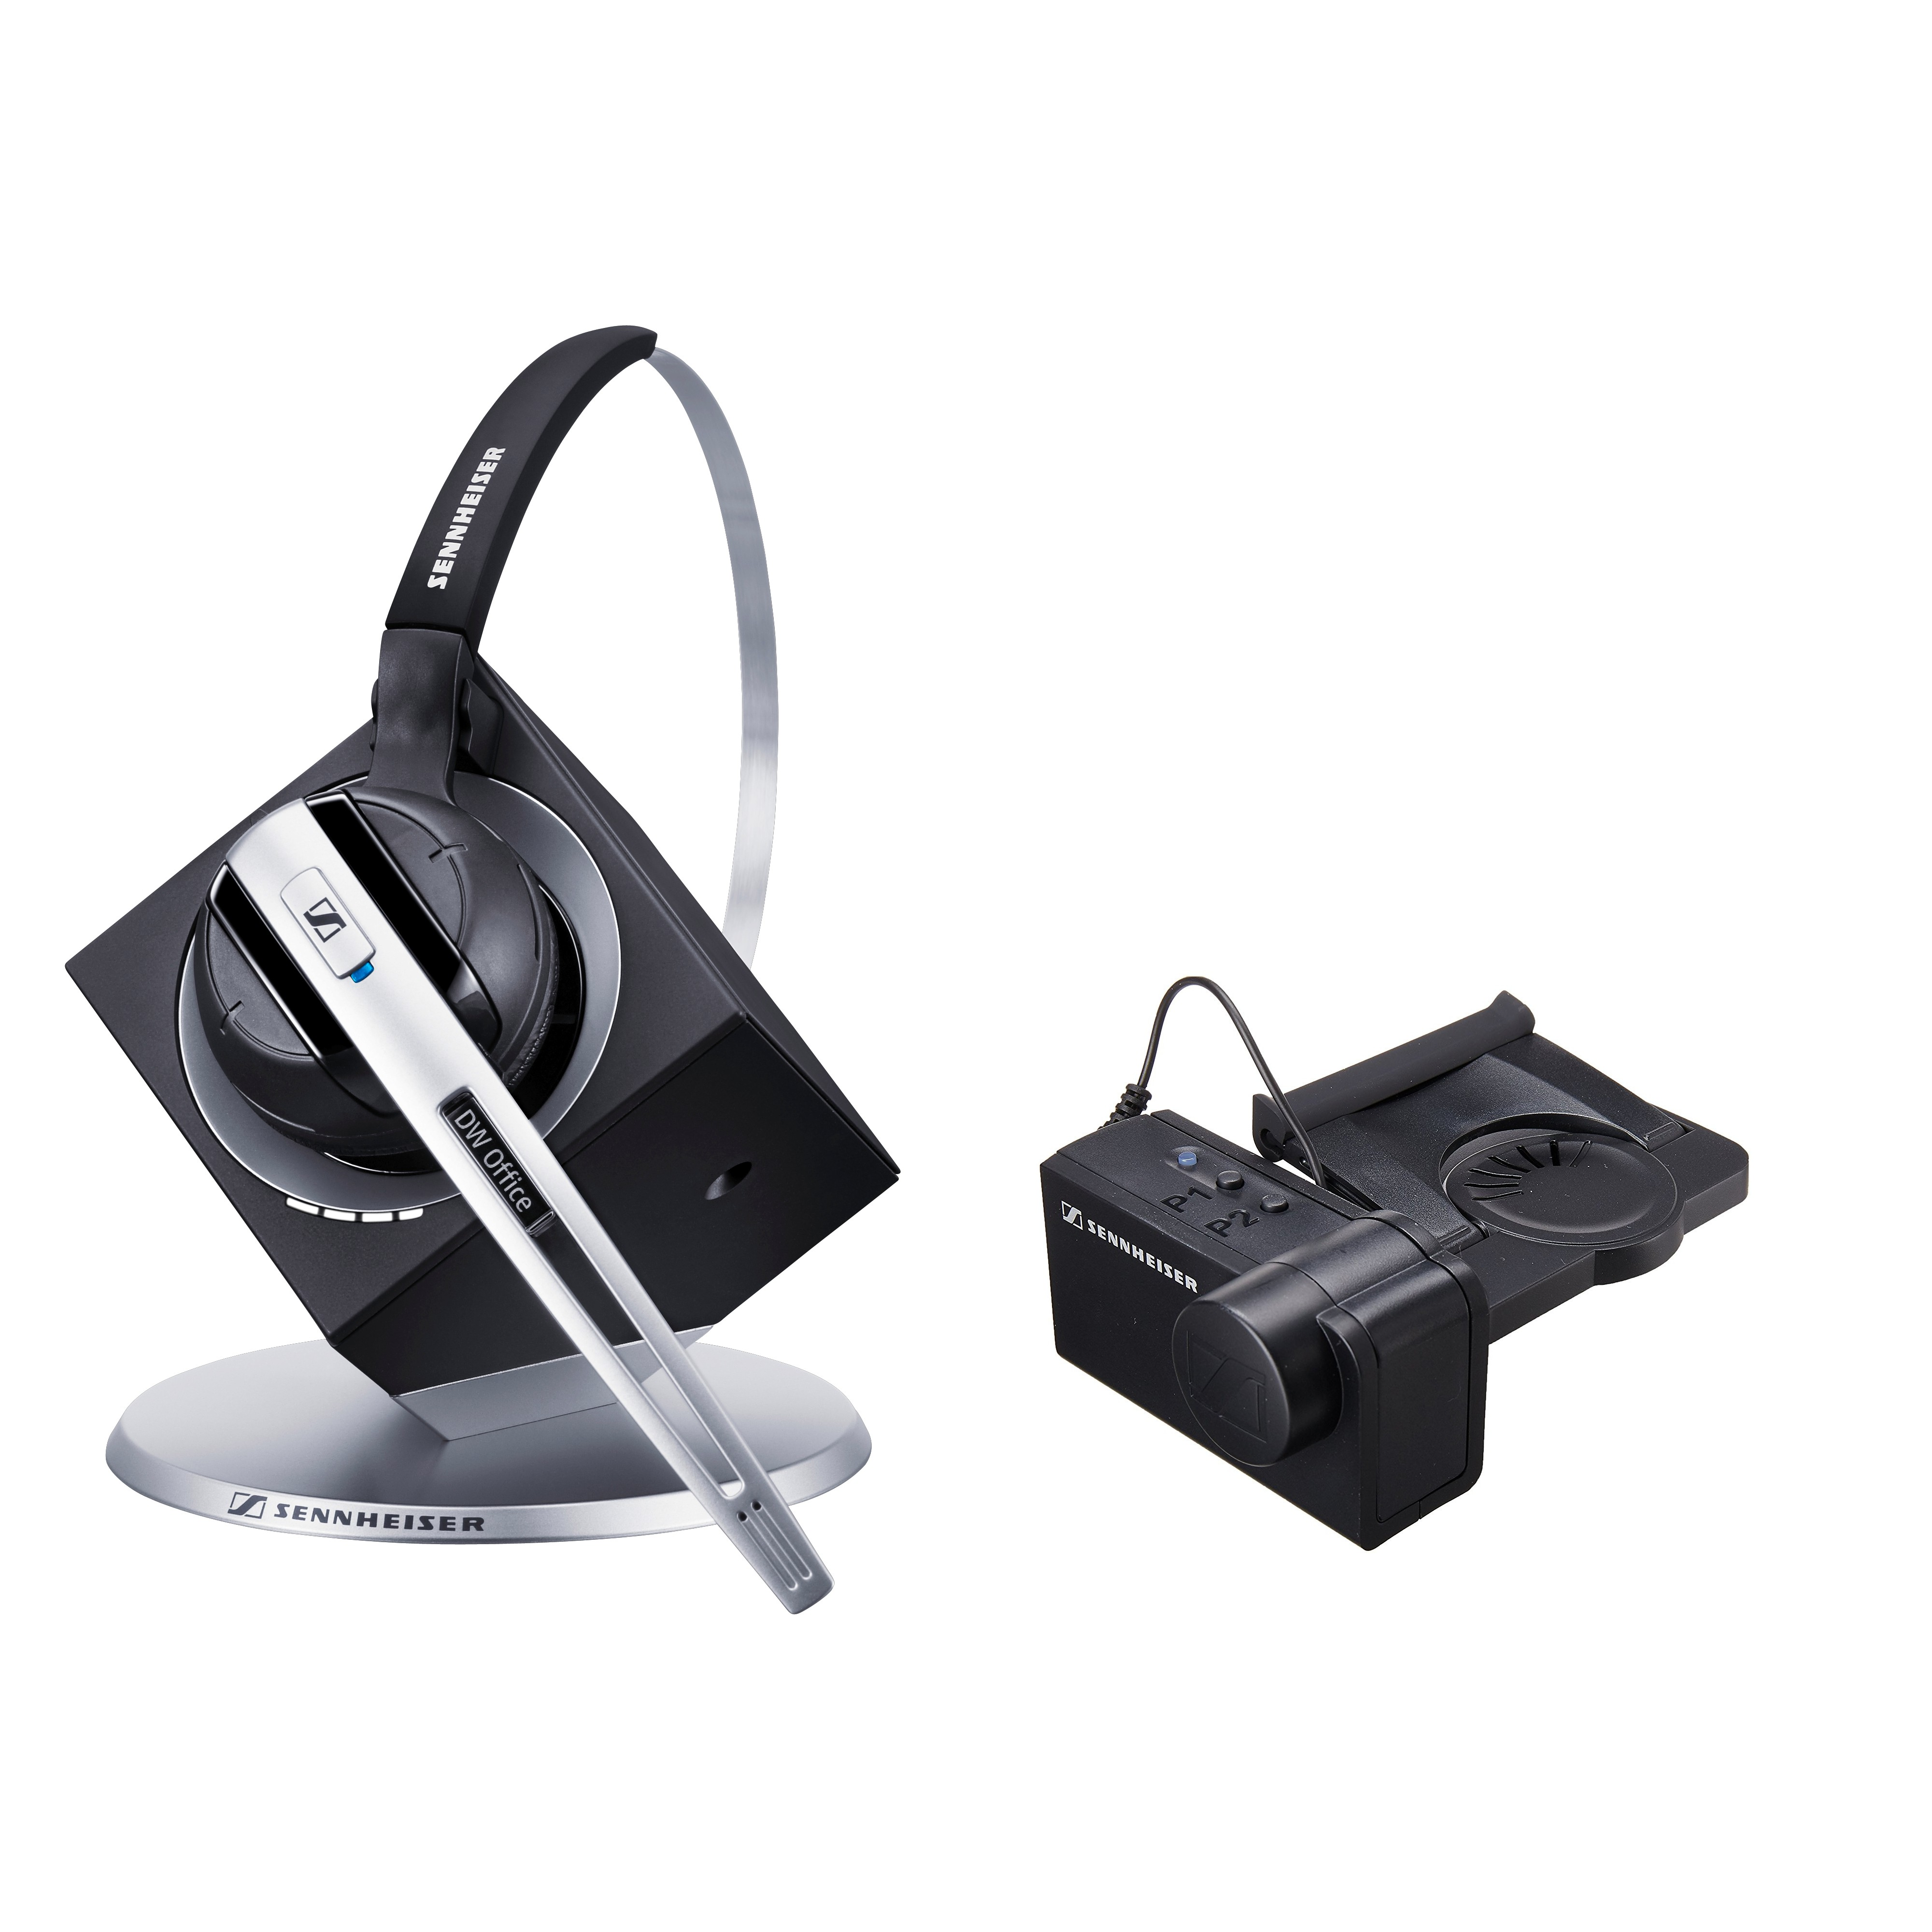 Sennheiser DW Office DECT Headset with Sennheiser HSL 10 Lifter Bundle